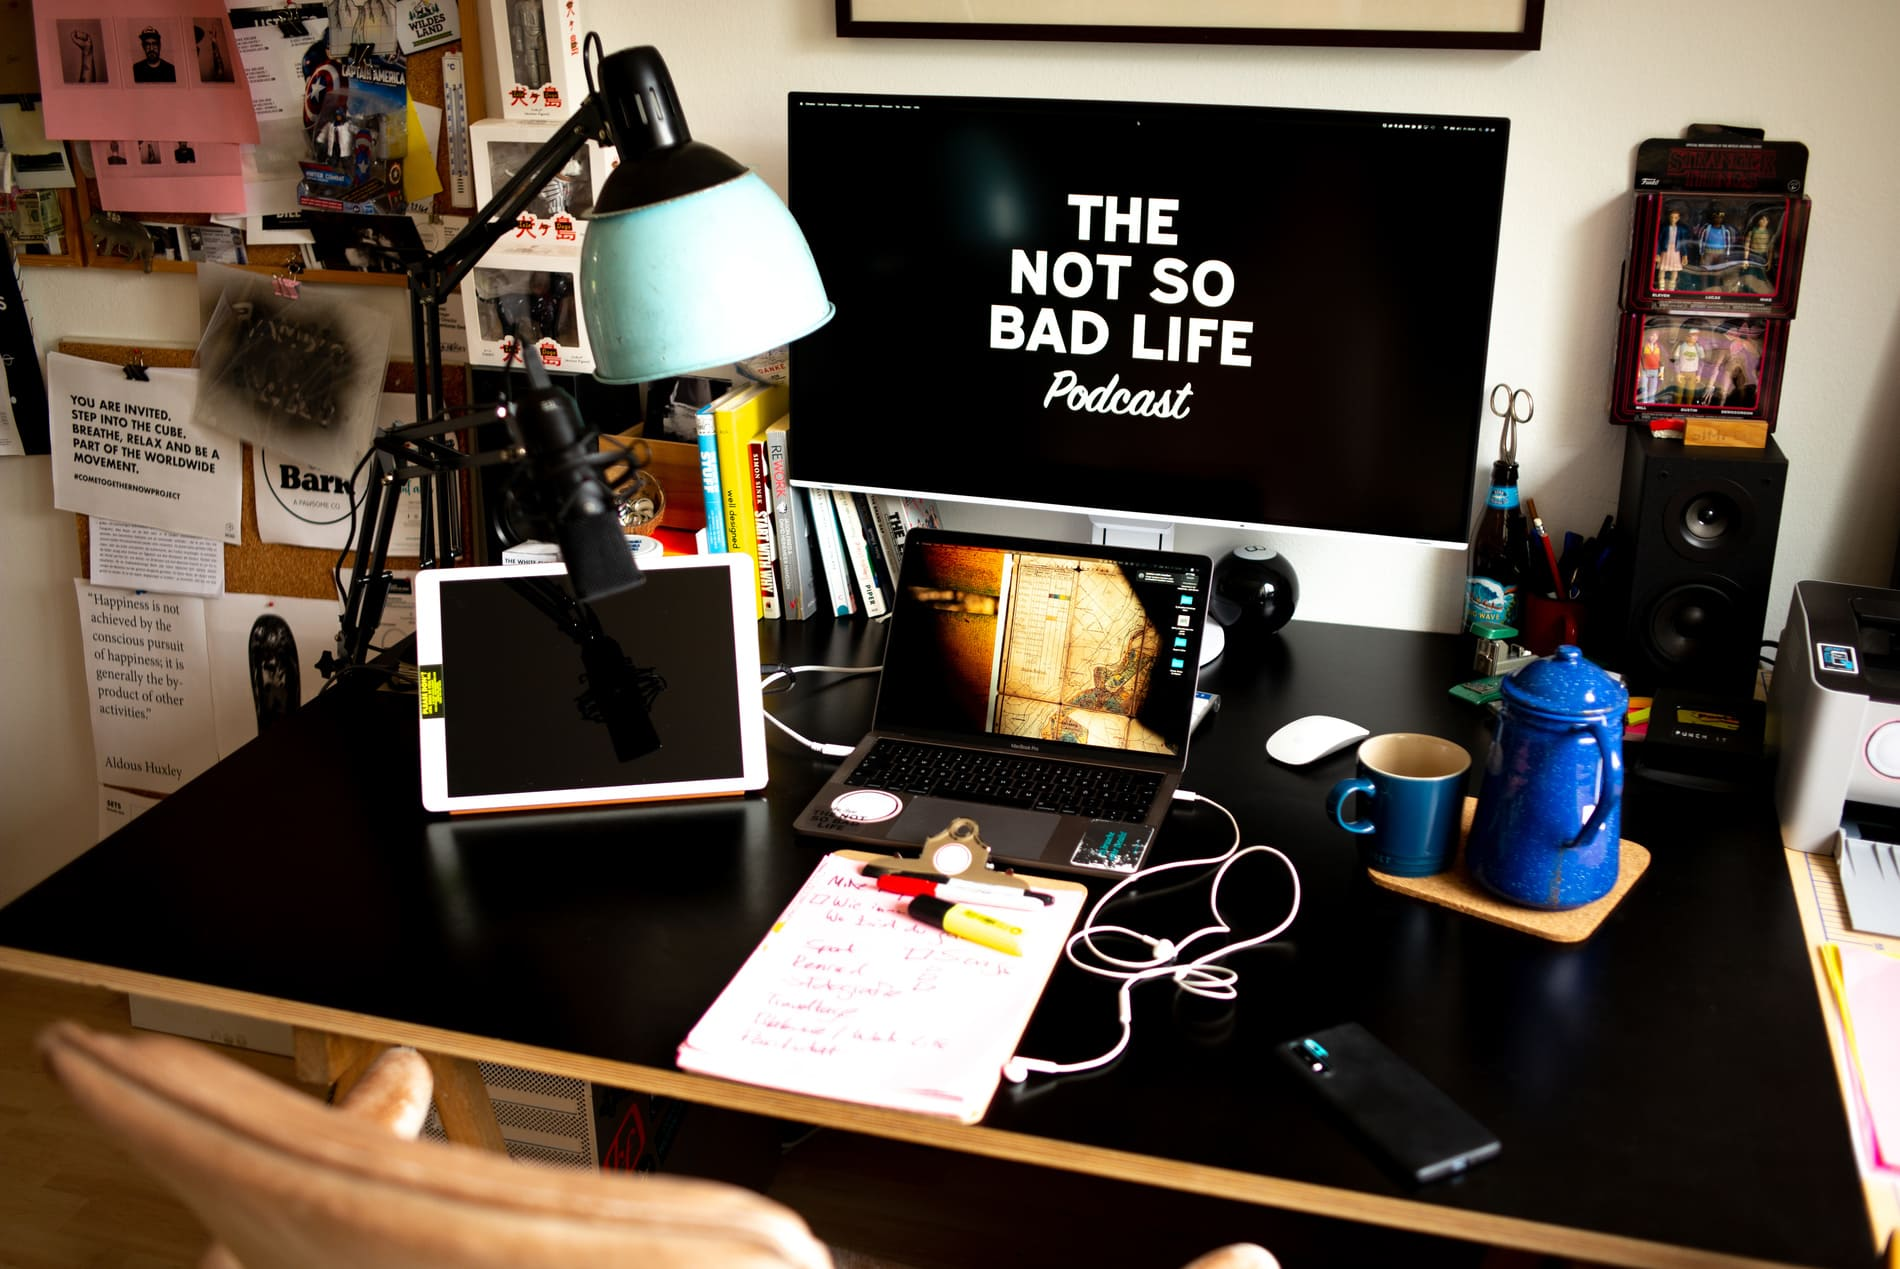 The Not So Bad Life Podcast